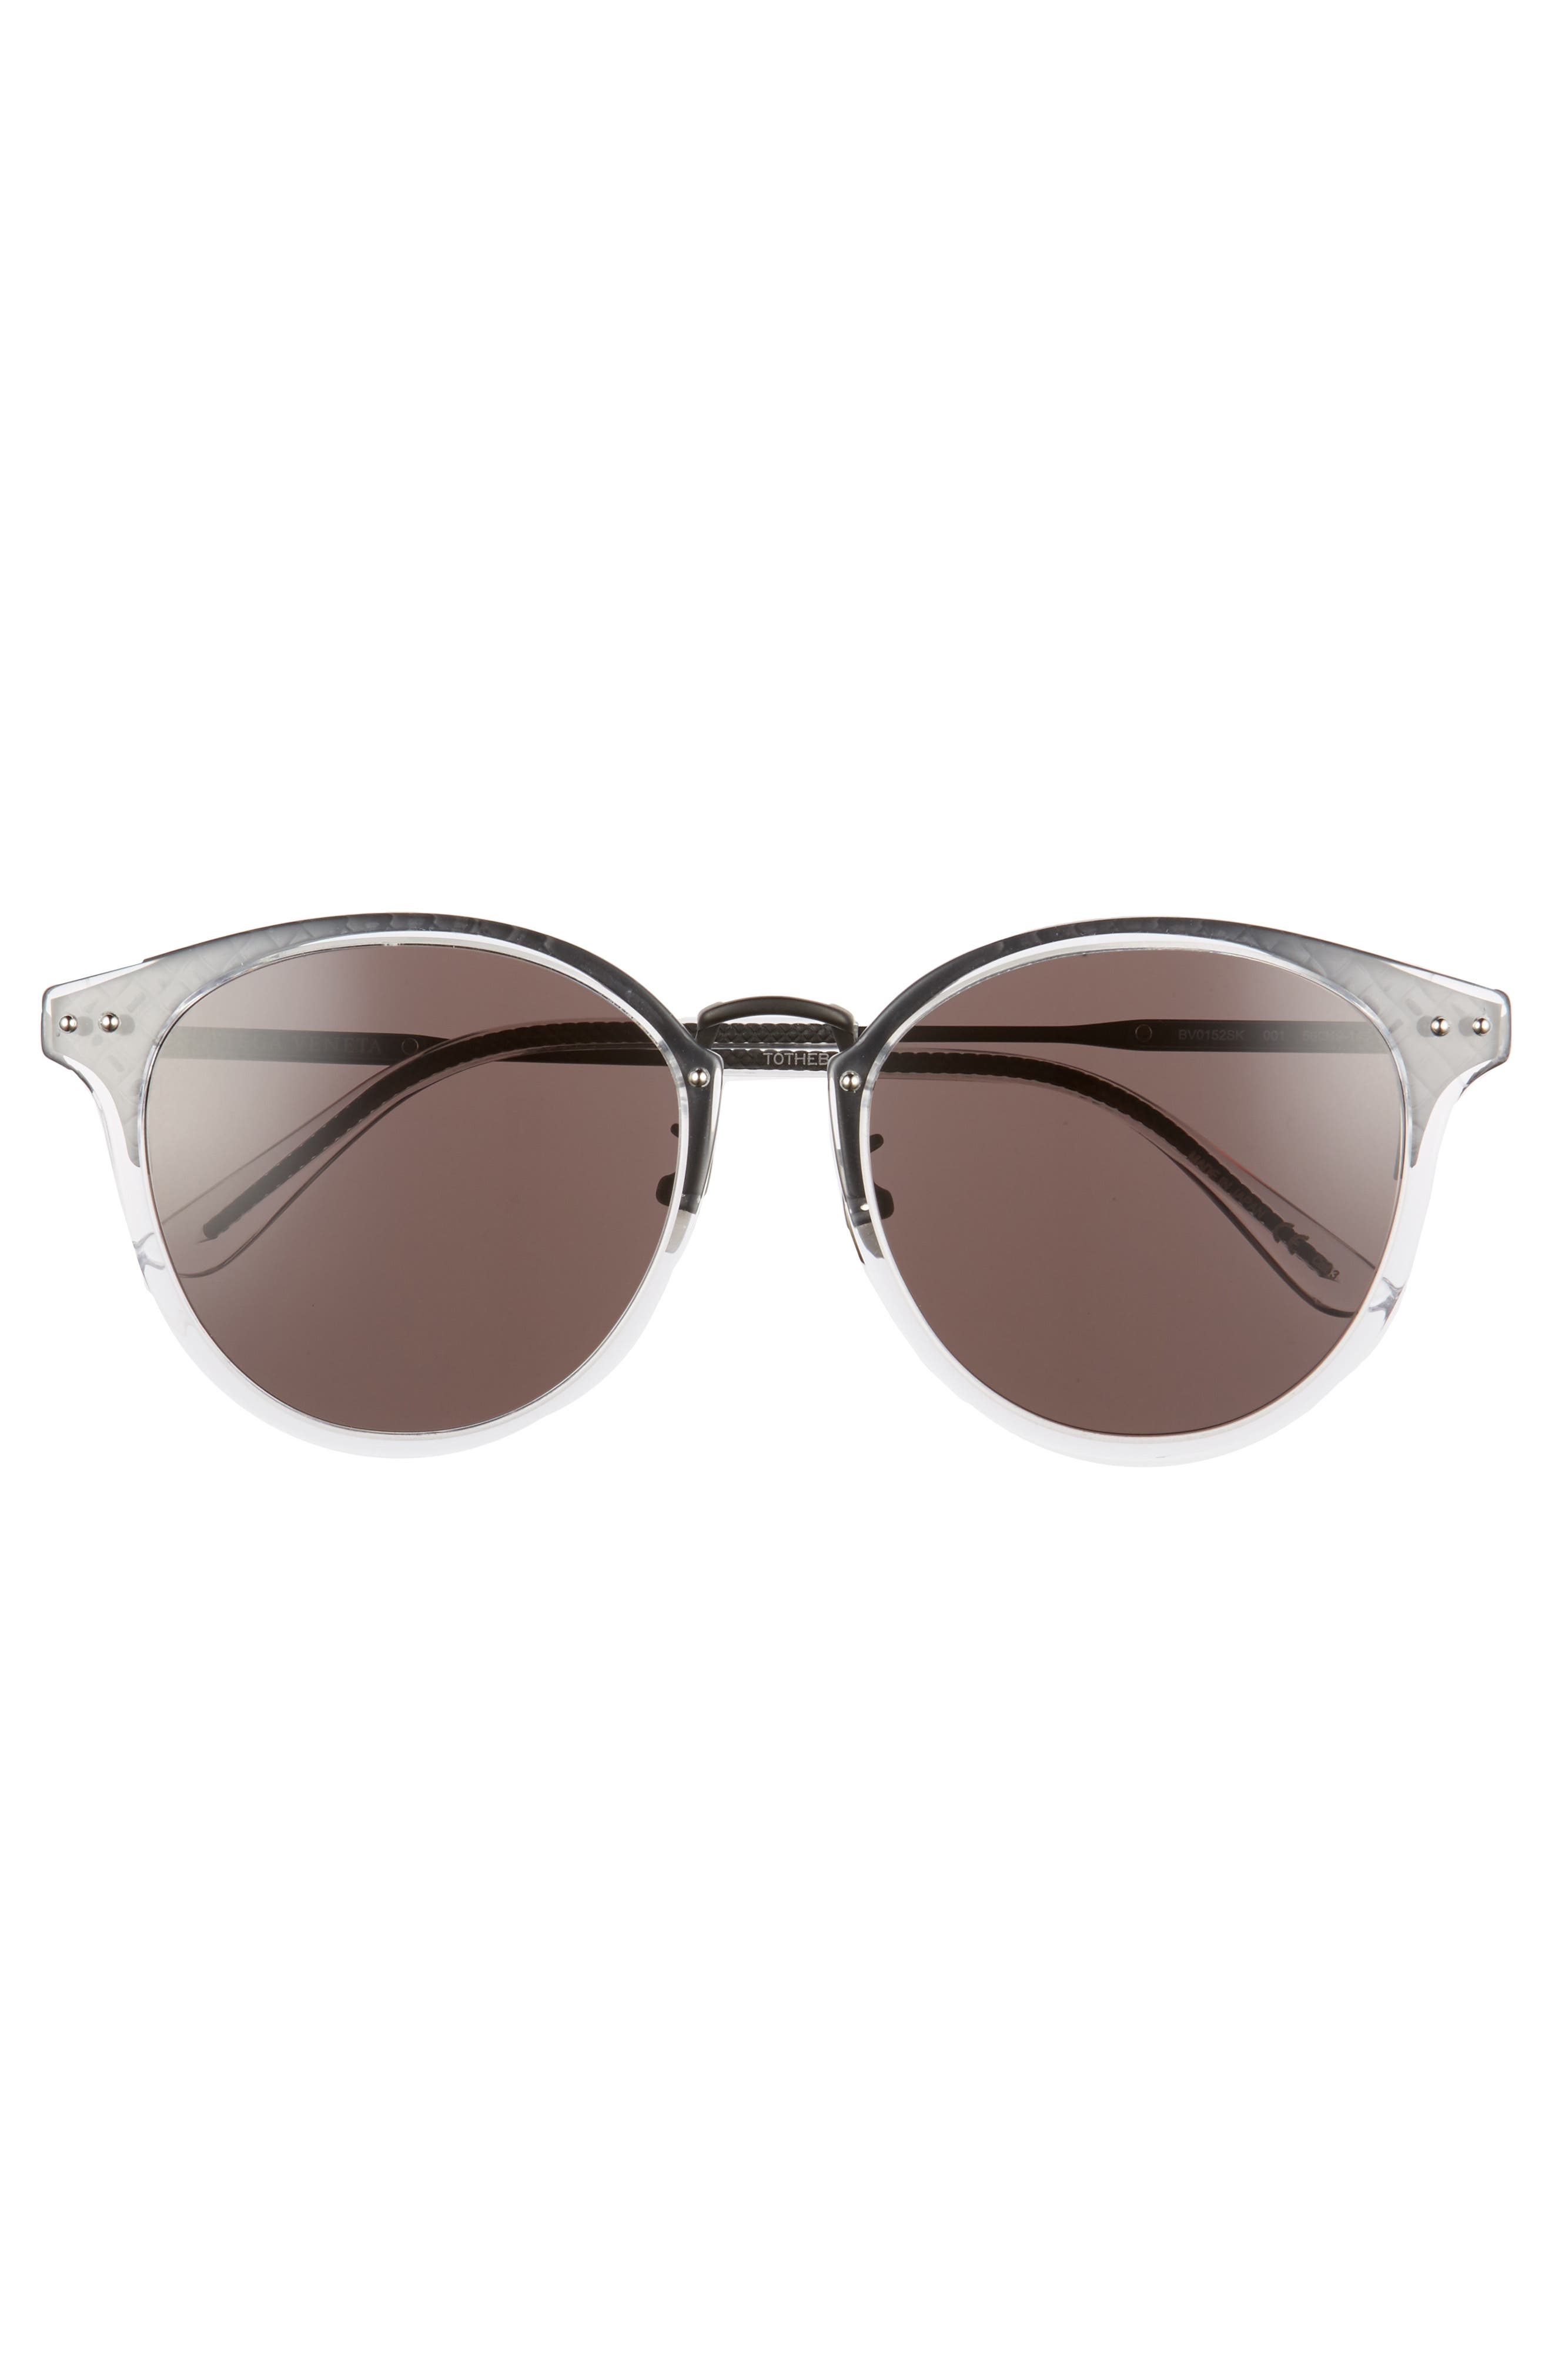 56mm Round Sunglasses,                             Alternate thumbnail 3, color,                             BRONZE